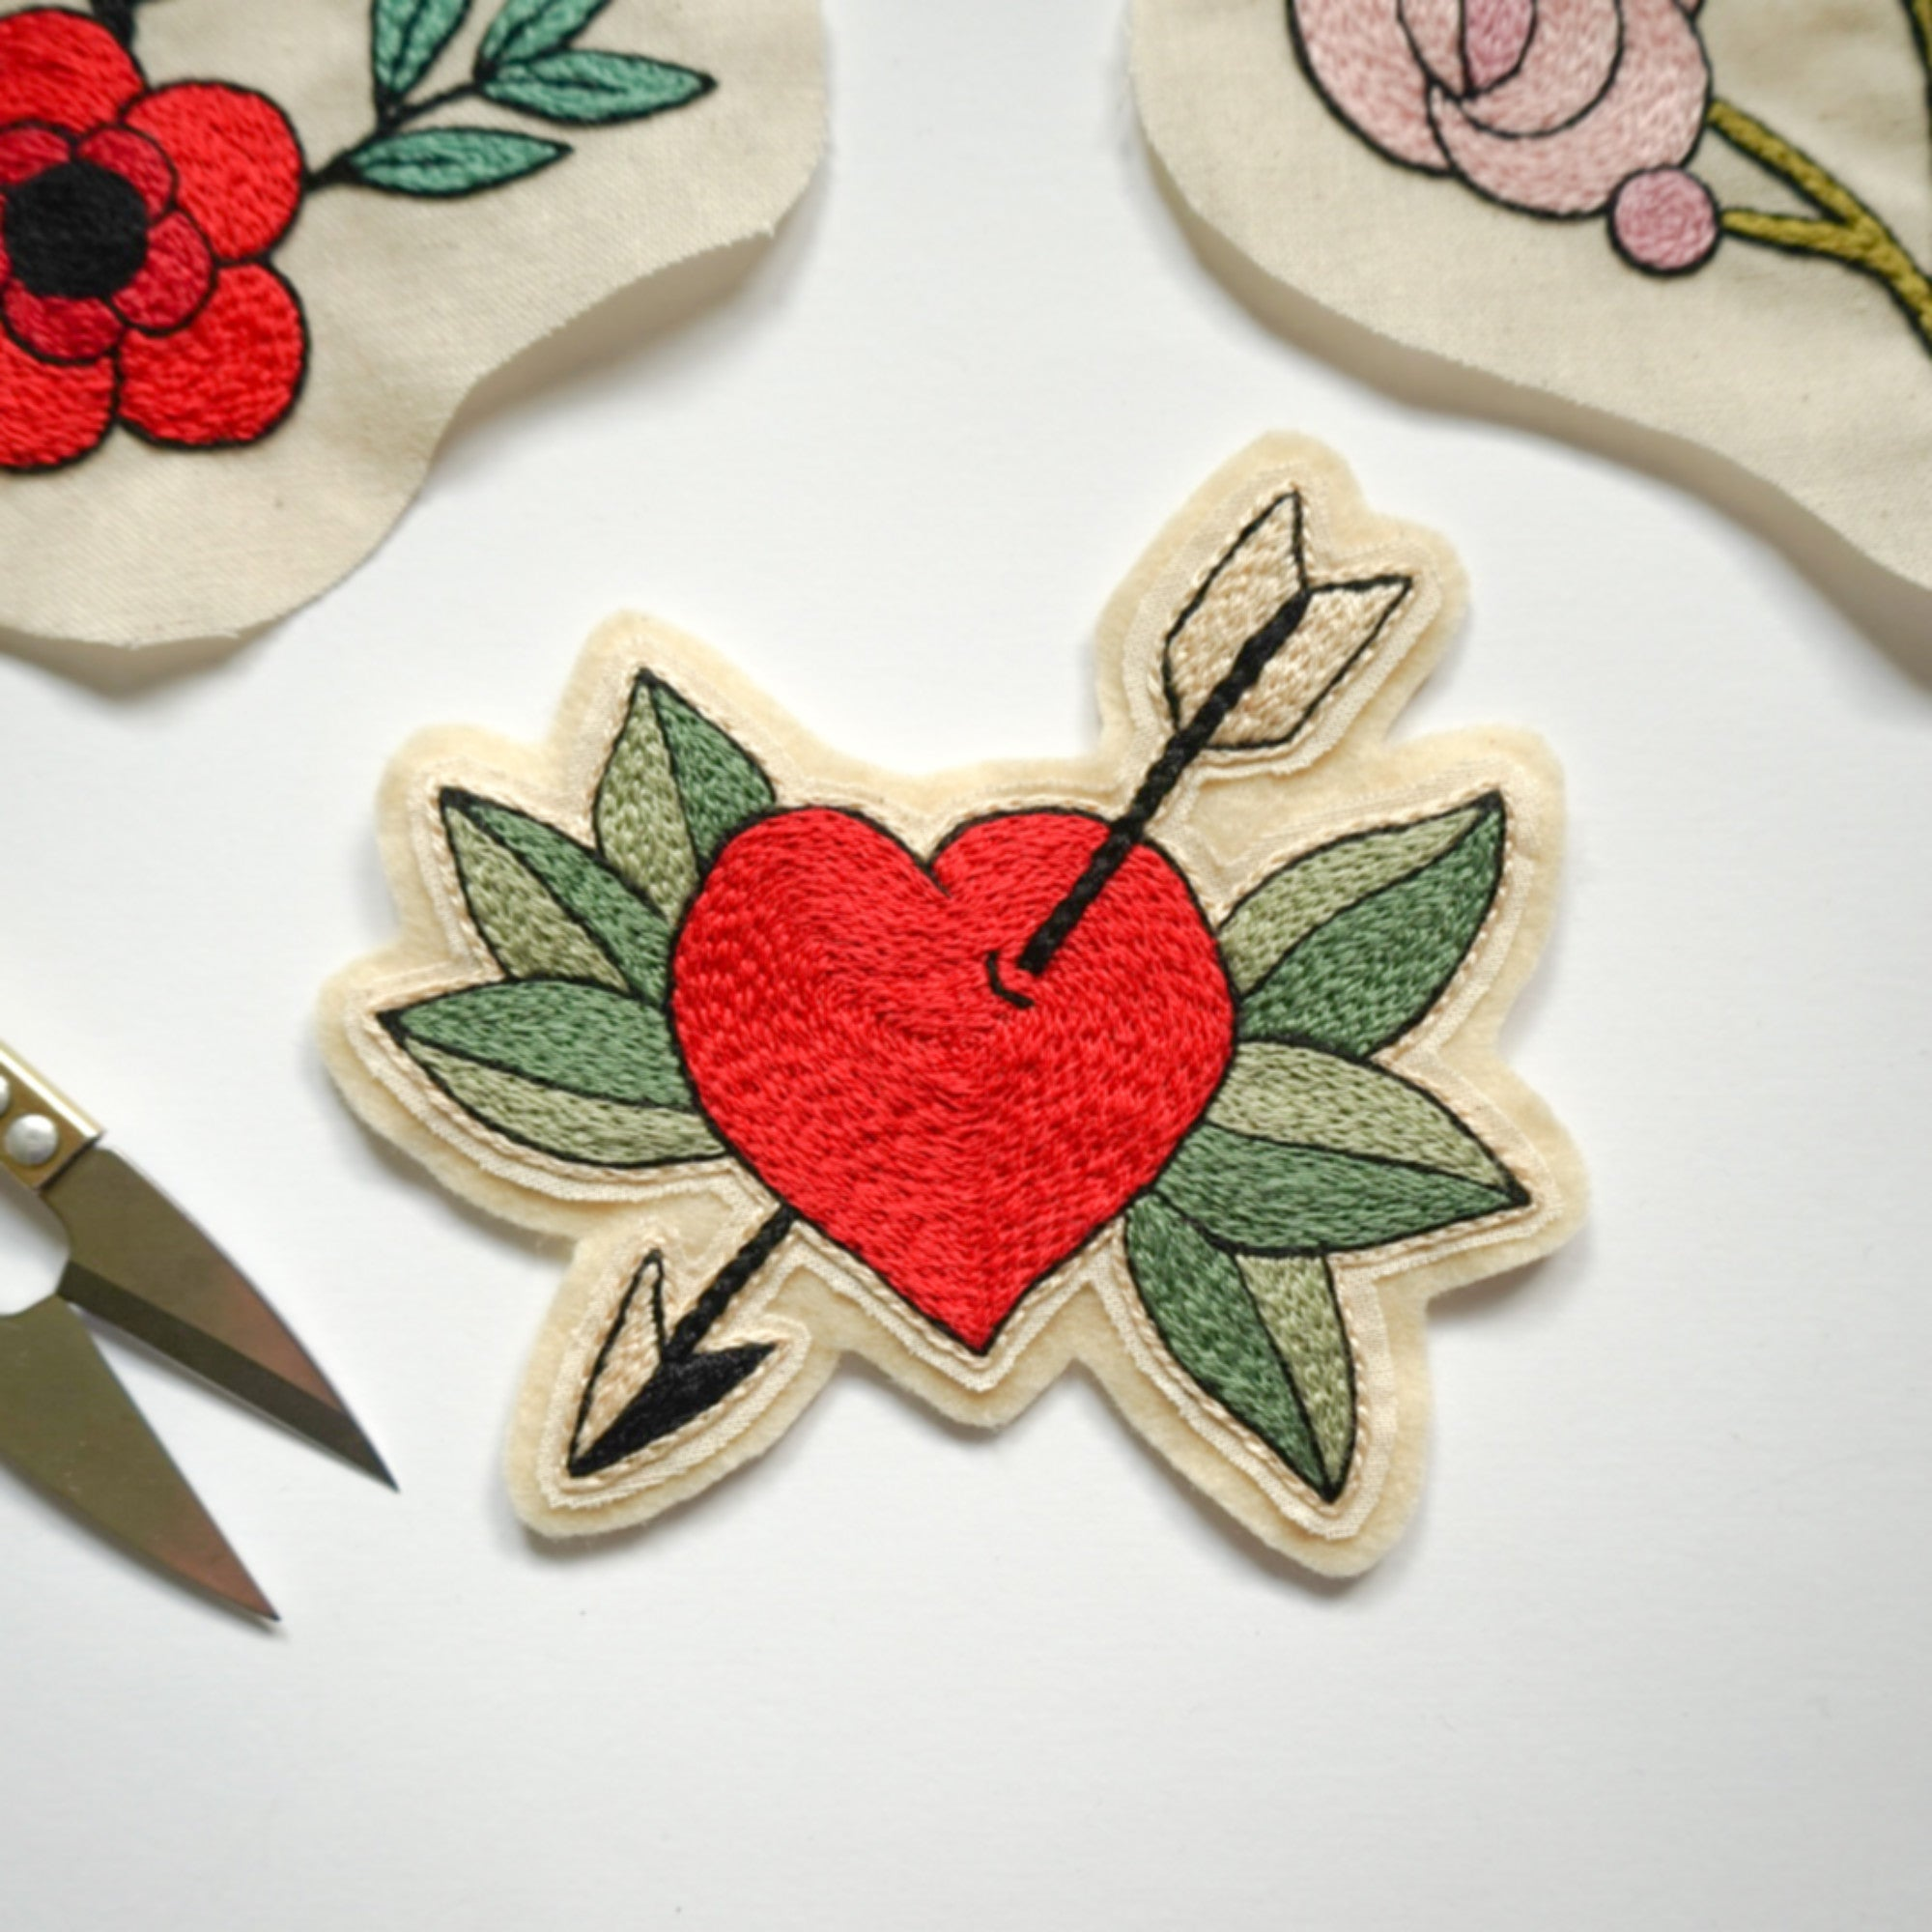 Hand Embroidery Heart With Arrow Patch - Redwork Stitches